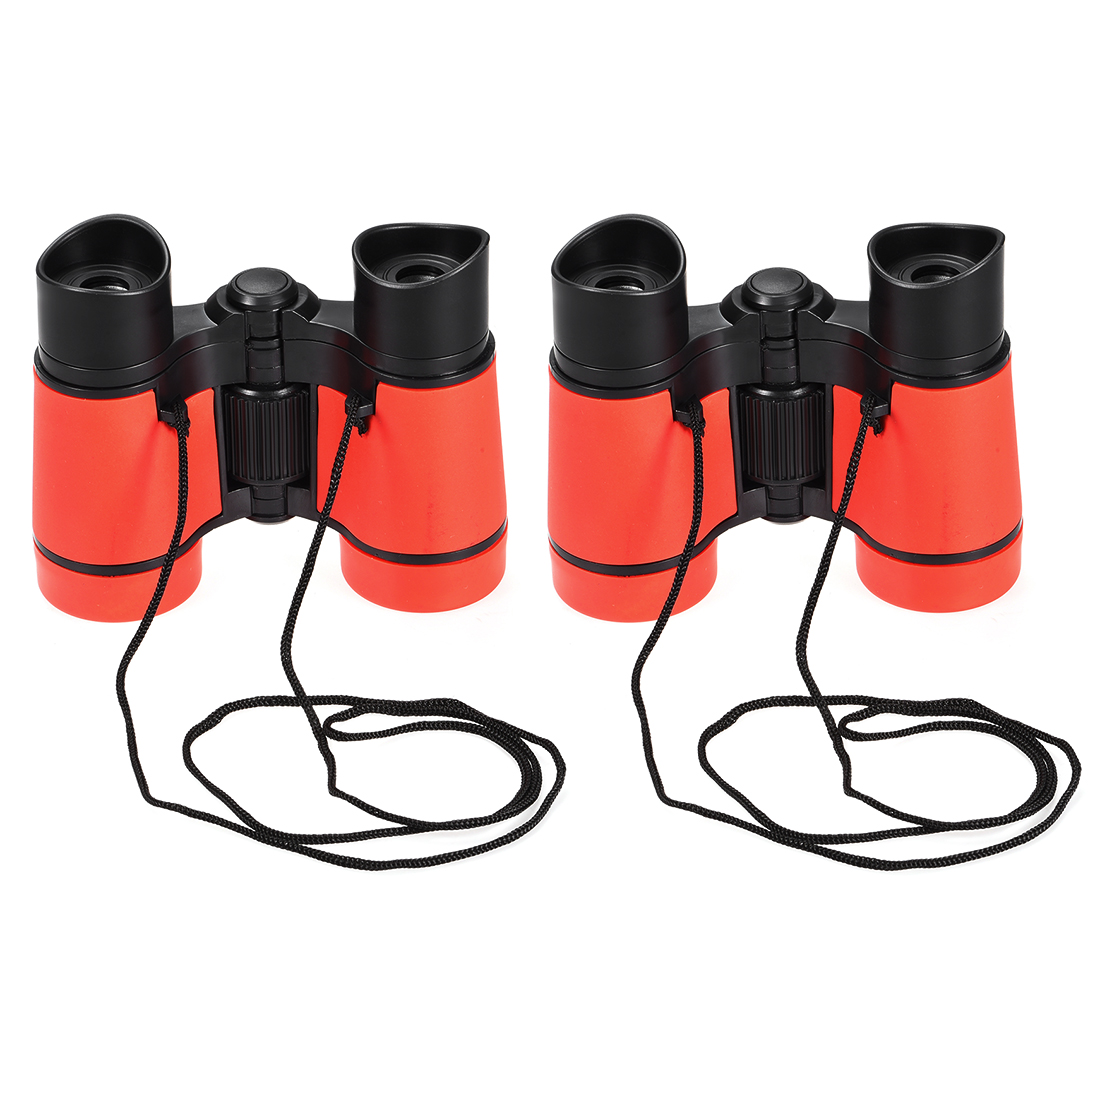 2pcs Toy Binoculars 4X30 Compact Foldable Binoculars Red with Neck Strap